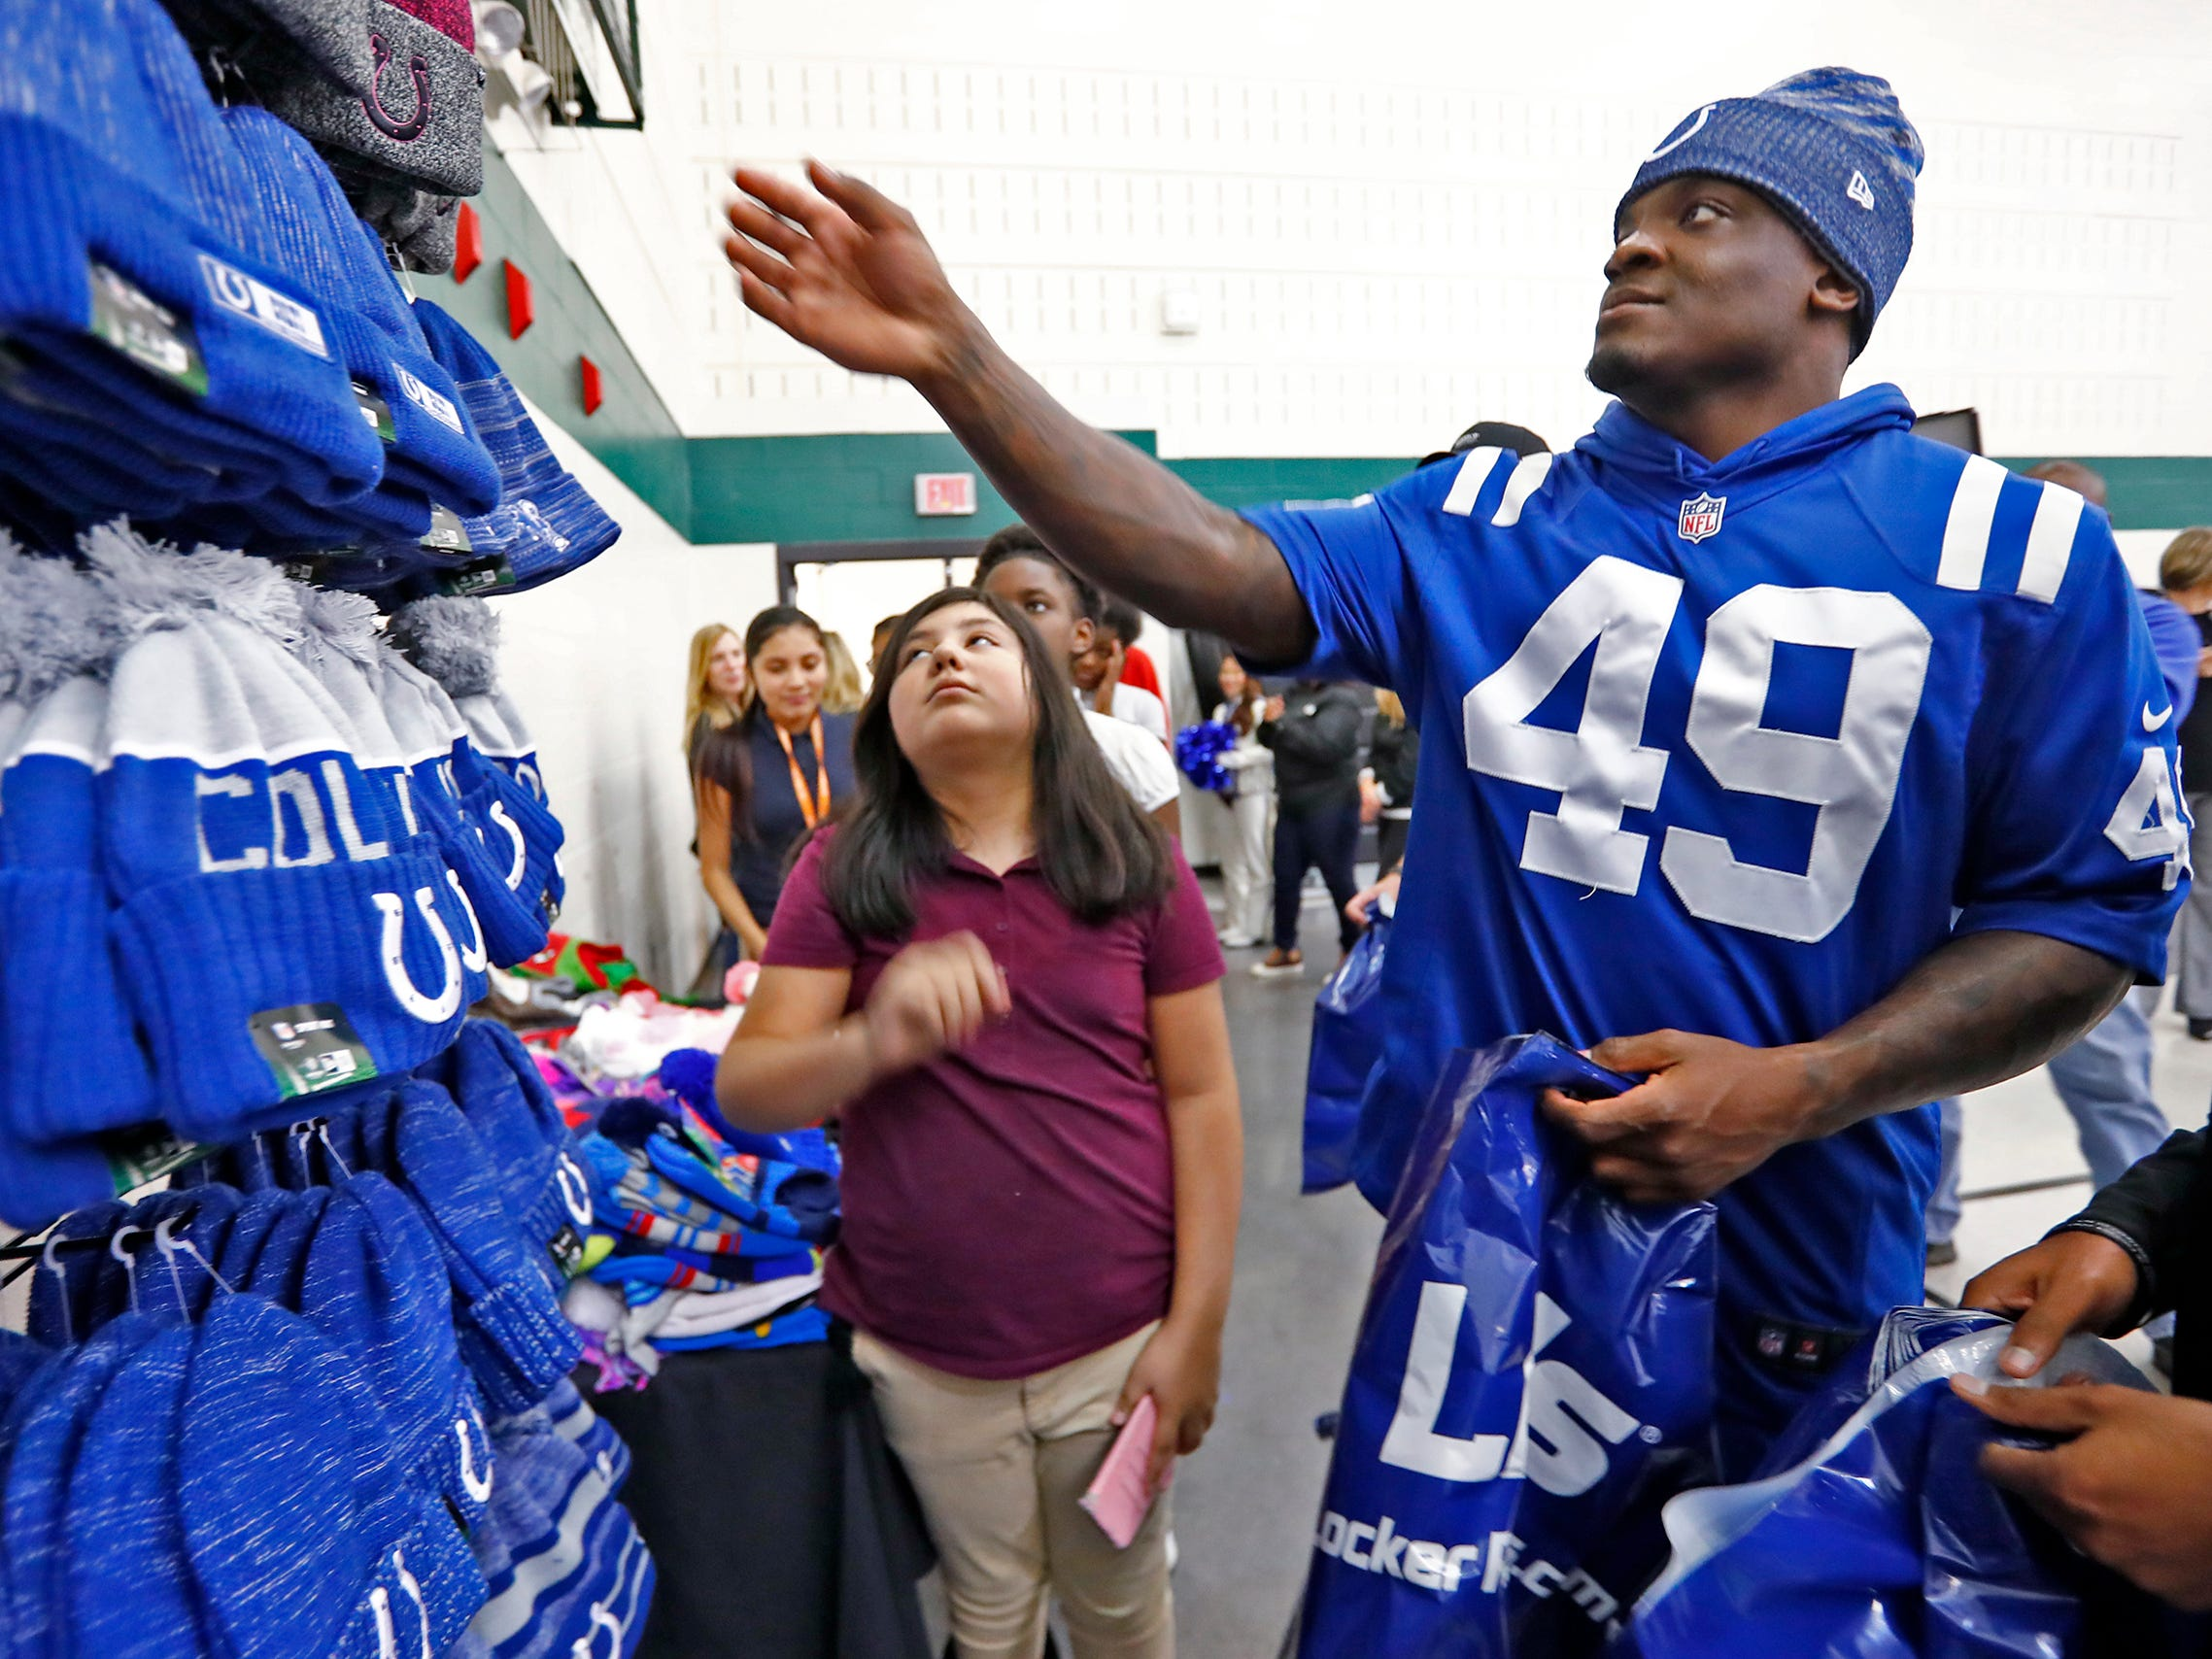 Indianapolis Colts' Matthew Adams reaches for a hat to give to Alicia Martinez at Brookside School 54, Monday, Dec. 3, 2018.  Colts players and staff joined as LIDS Sports and its parent company Genesco fit and gave new shoes, socks, hats, and snacks to students as part of the 13th annual Cold Feet, Warm Shoes event.